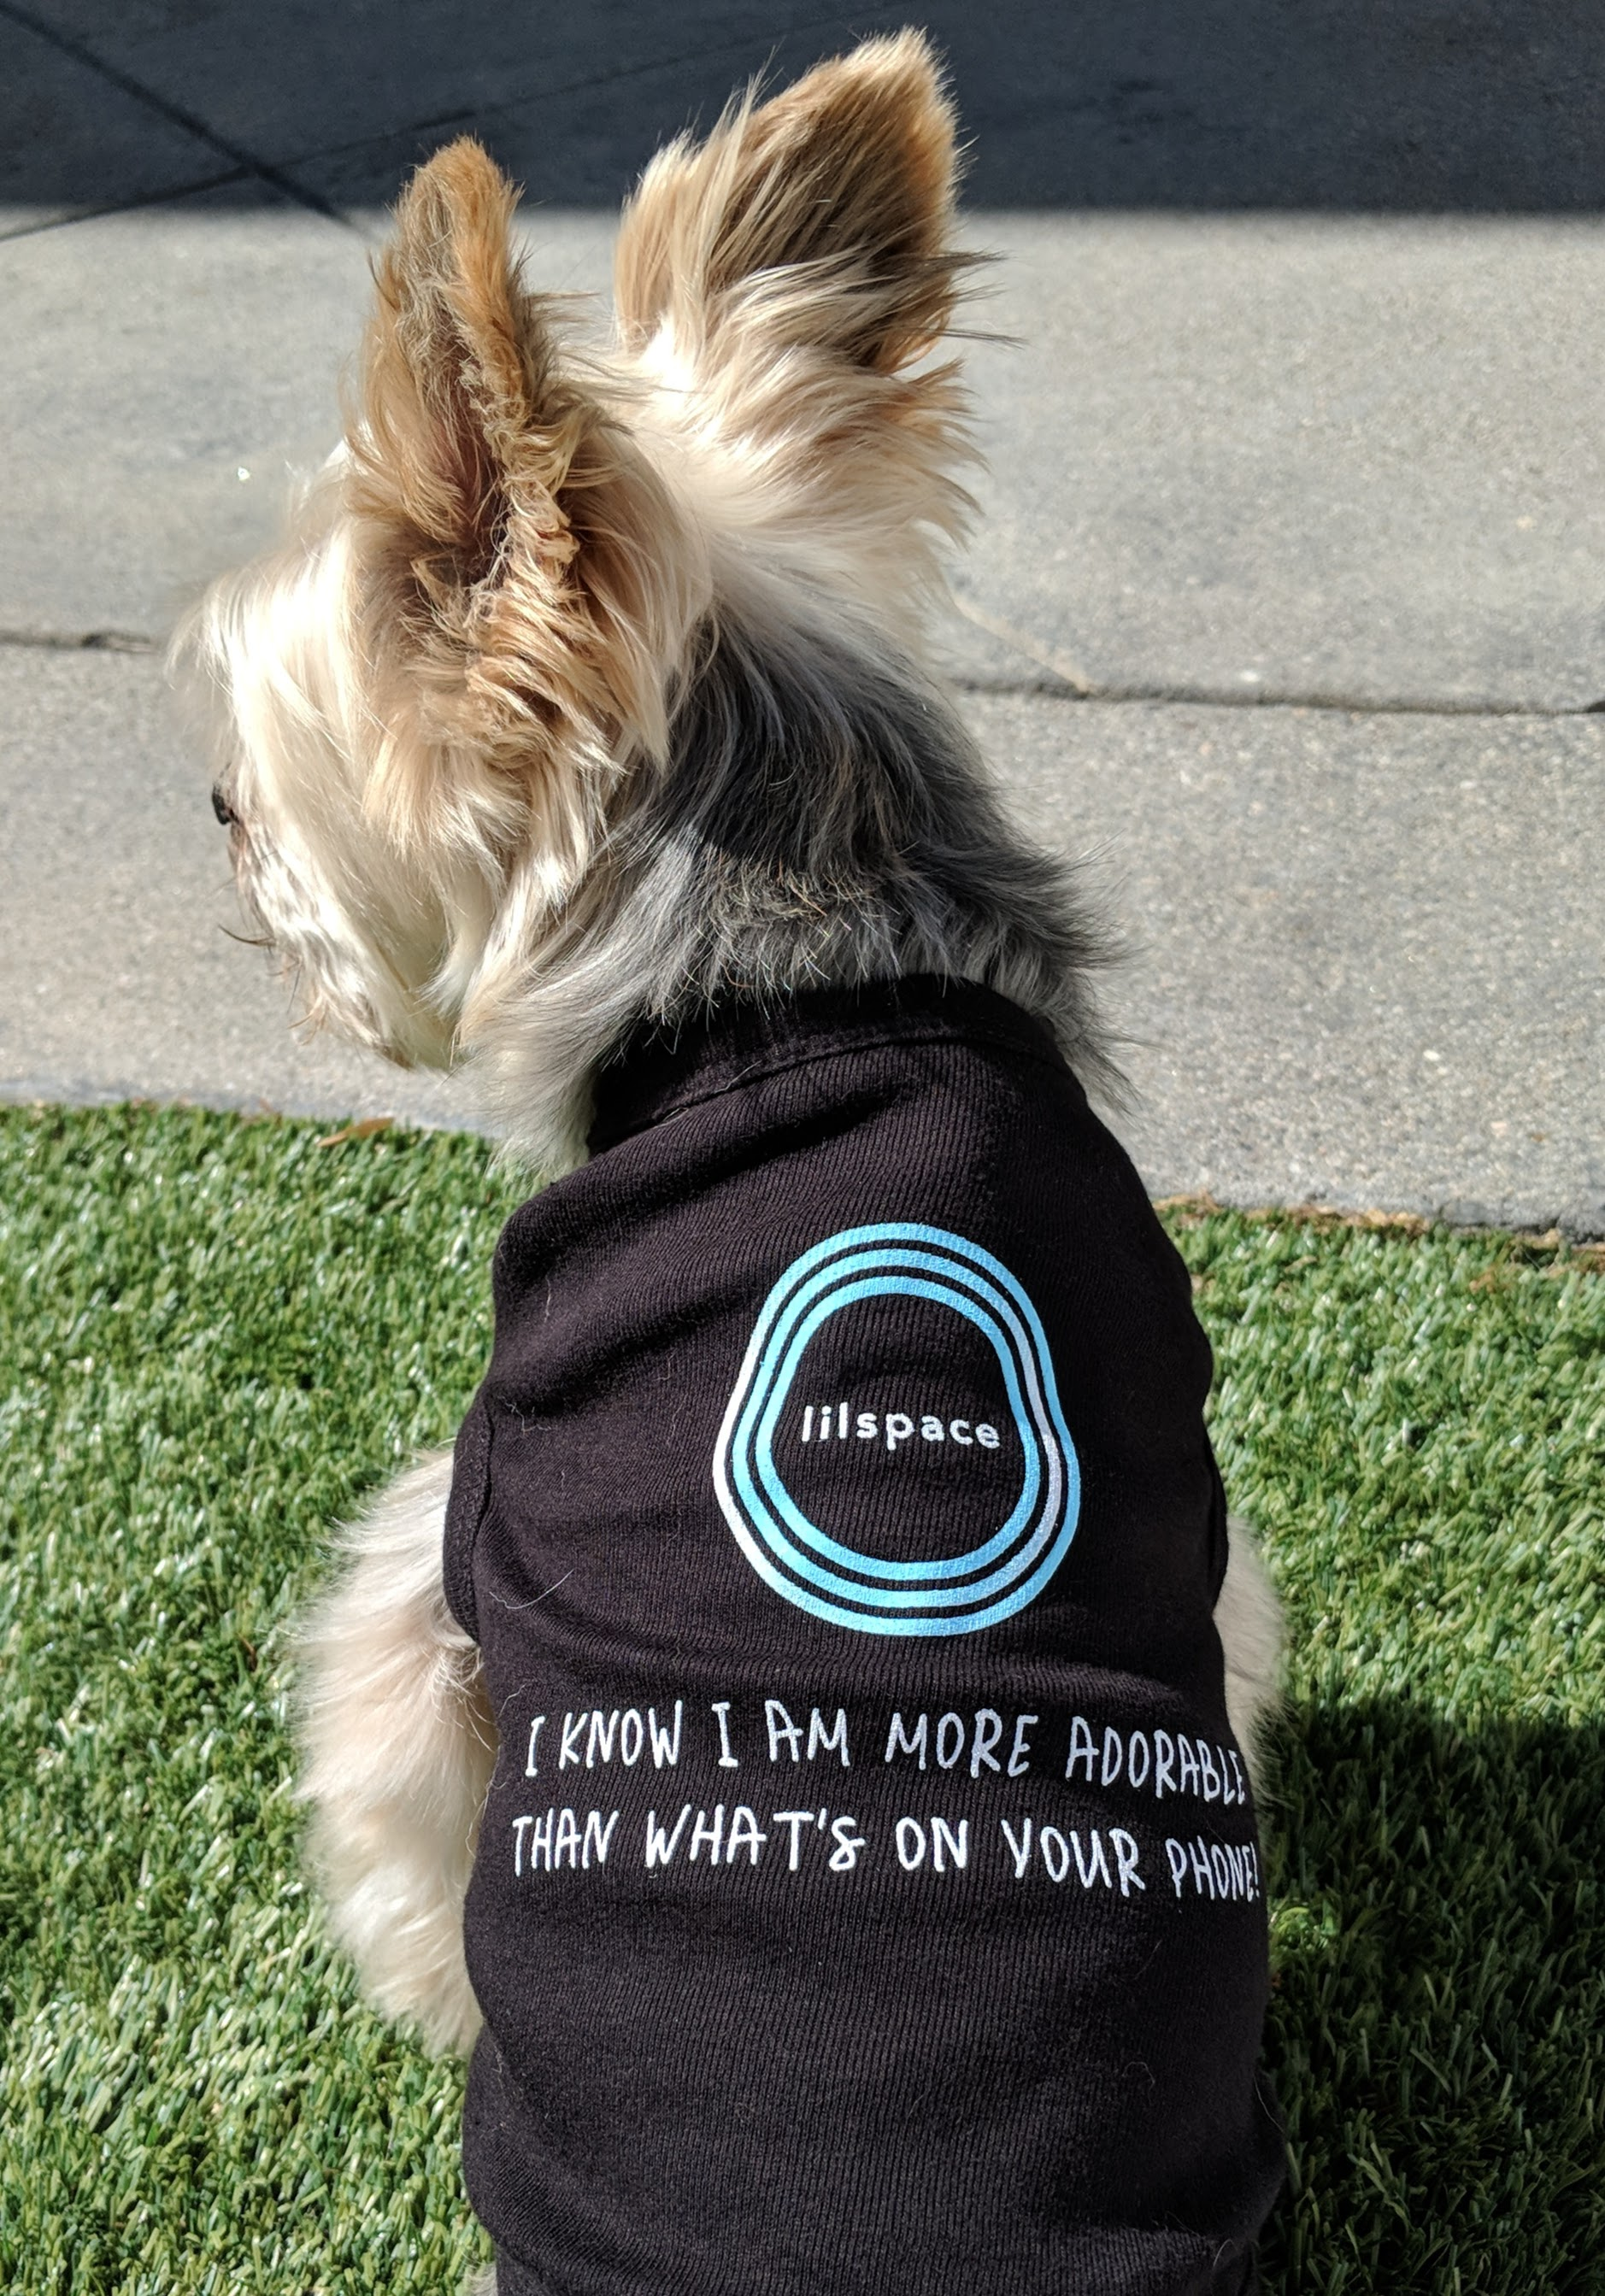 DOG TIME - Your four-legged best friend loves your full attention. UNPLUG FOR 1 HOUR AND GET A FREE LILSPACE DOG SHIRT THAT SAYS